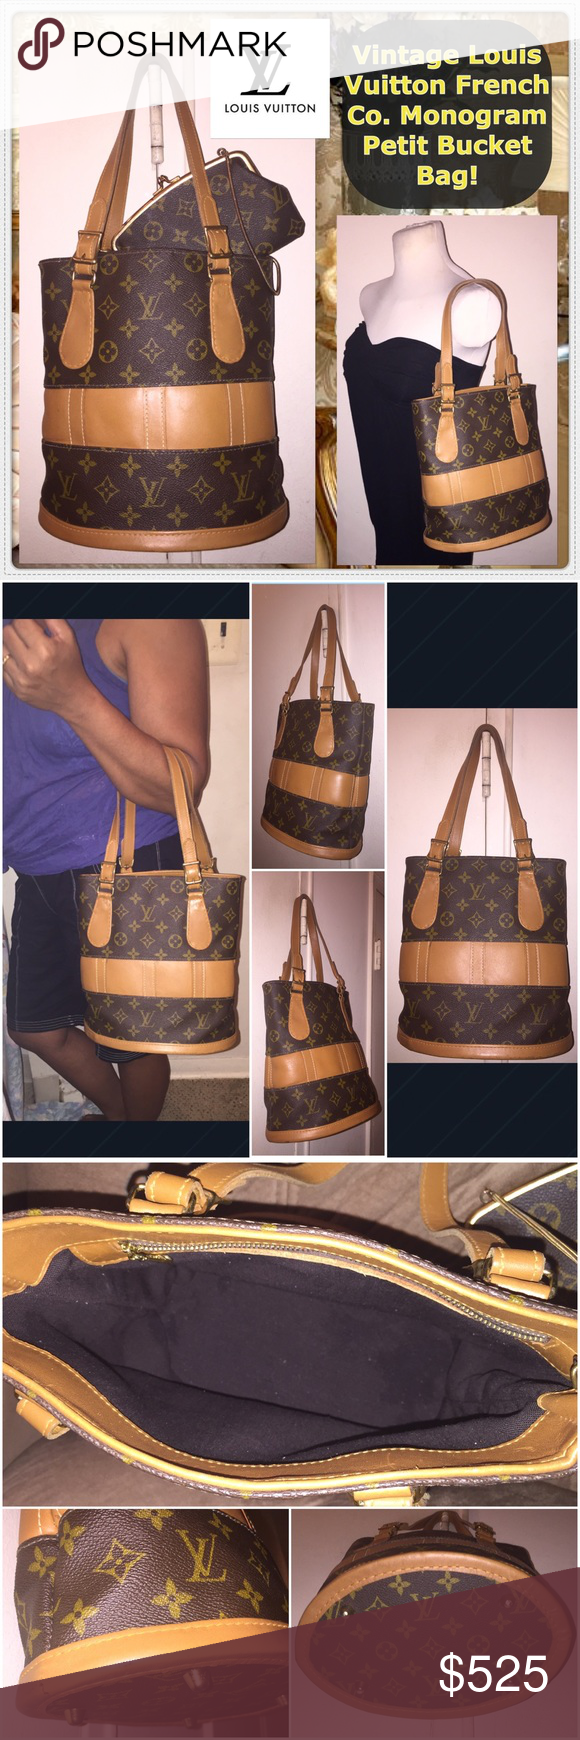 d3cddc77604 Spotted while shopping on Poshmark  VTG Louis Vuitton French Co. Petit Bucket  Bag!!  poshmark  fashion  shopping  style  Louis Vuitton  Handbags